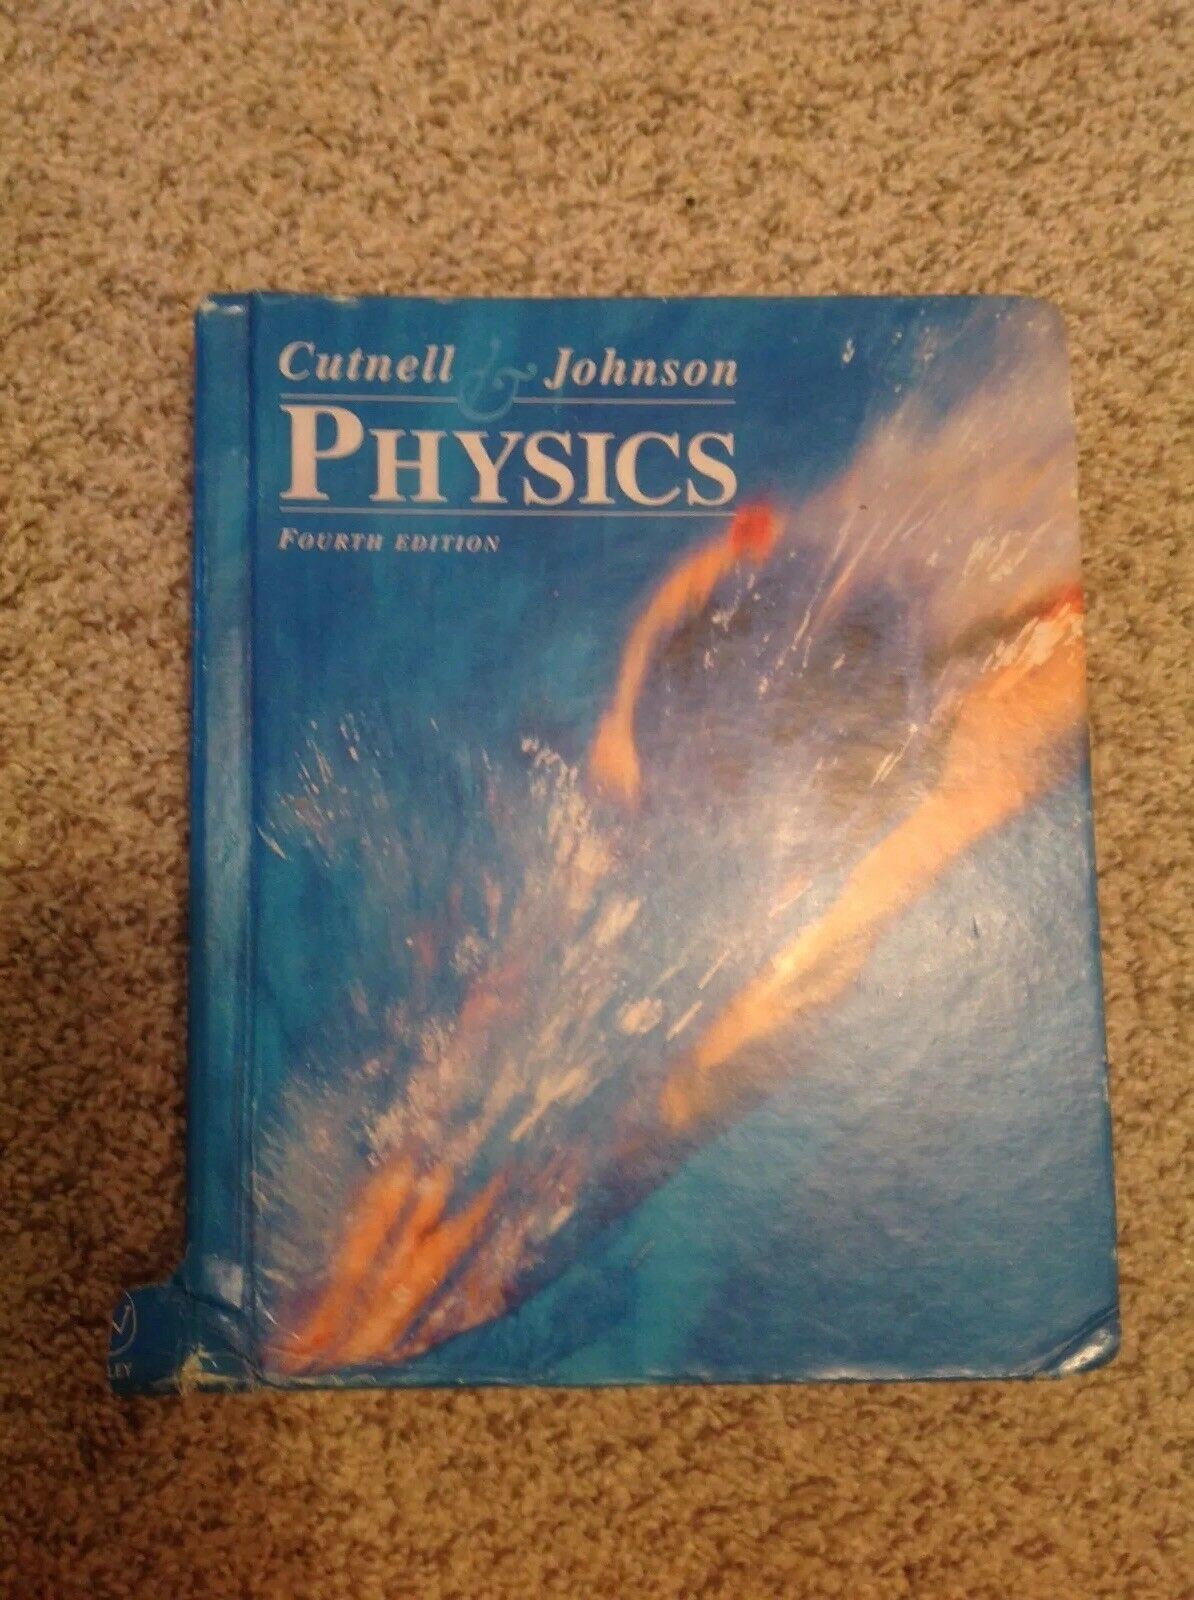 Physics Volume 1 by John D. Cutnell and Kenneth W. Johnson (1997,  Paperback) | eBay